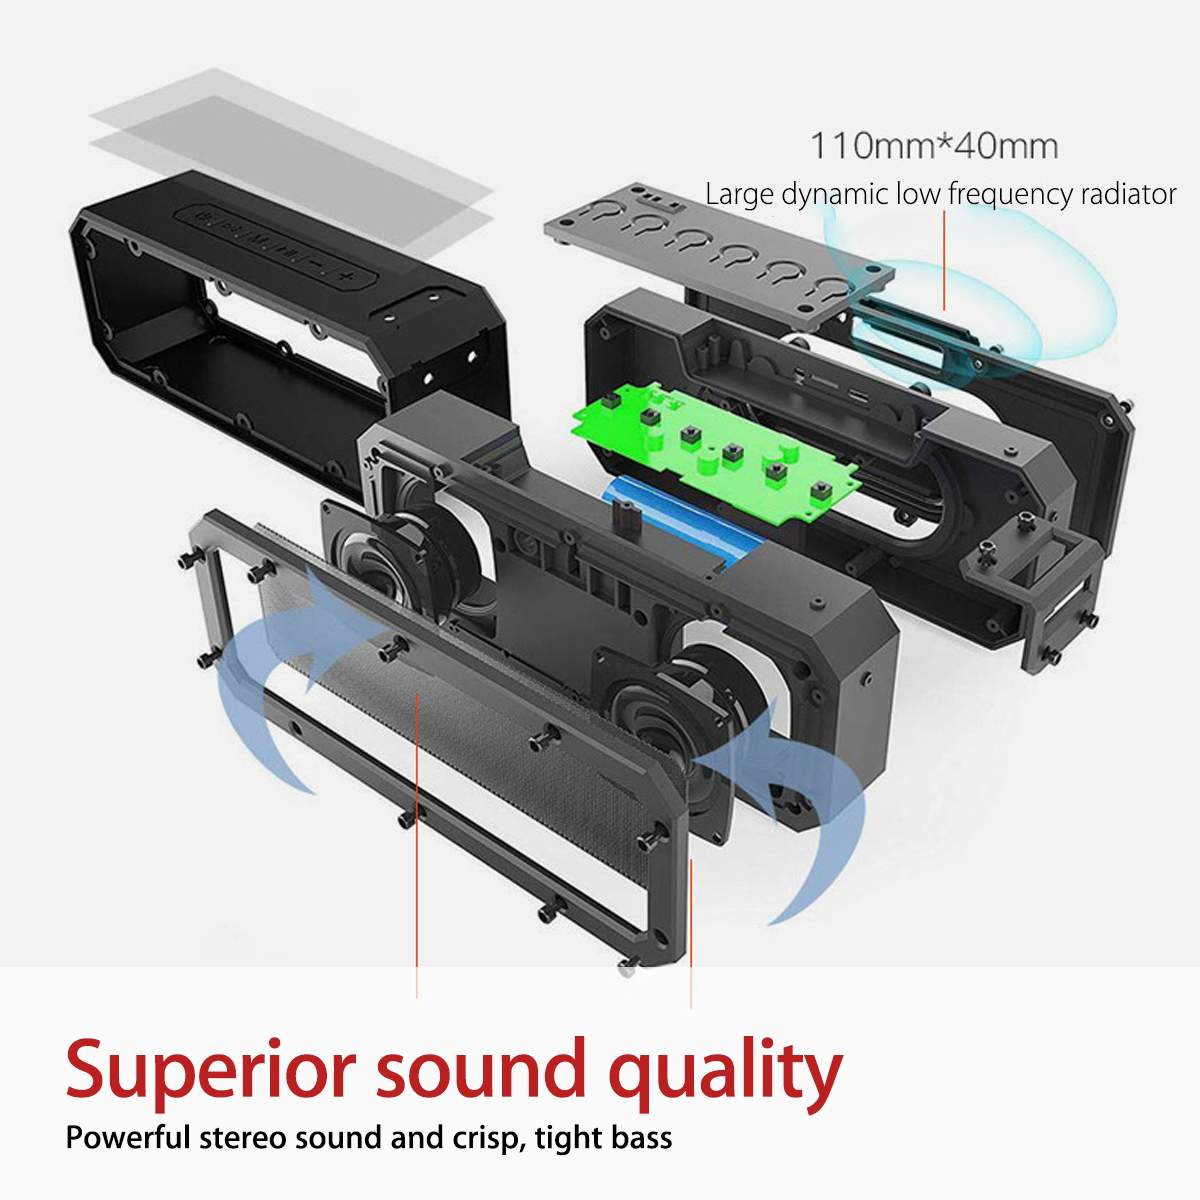 bluetooth Speaker 40W Column Portable Speaker IPX7 Waterproof Subwoofer with 360 Stereo Sound Outdoor Speakers Boombox enlarge